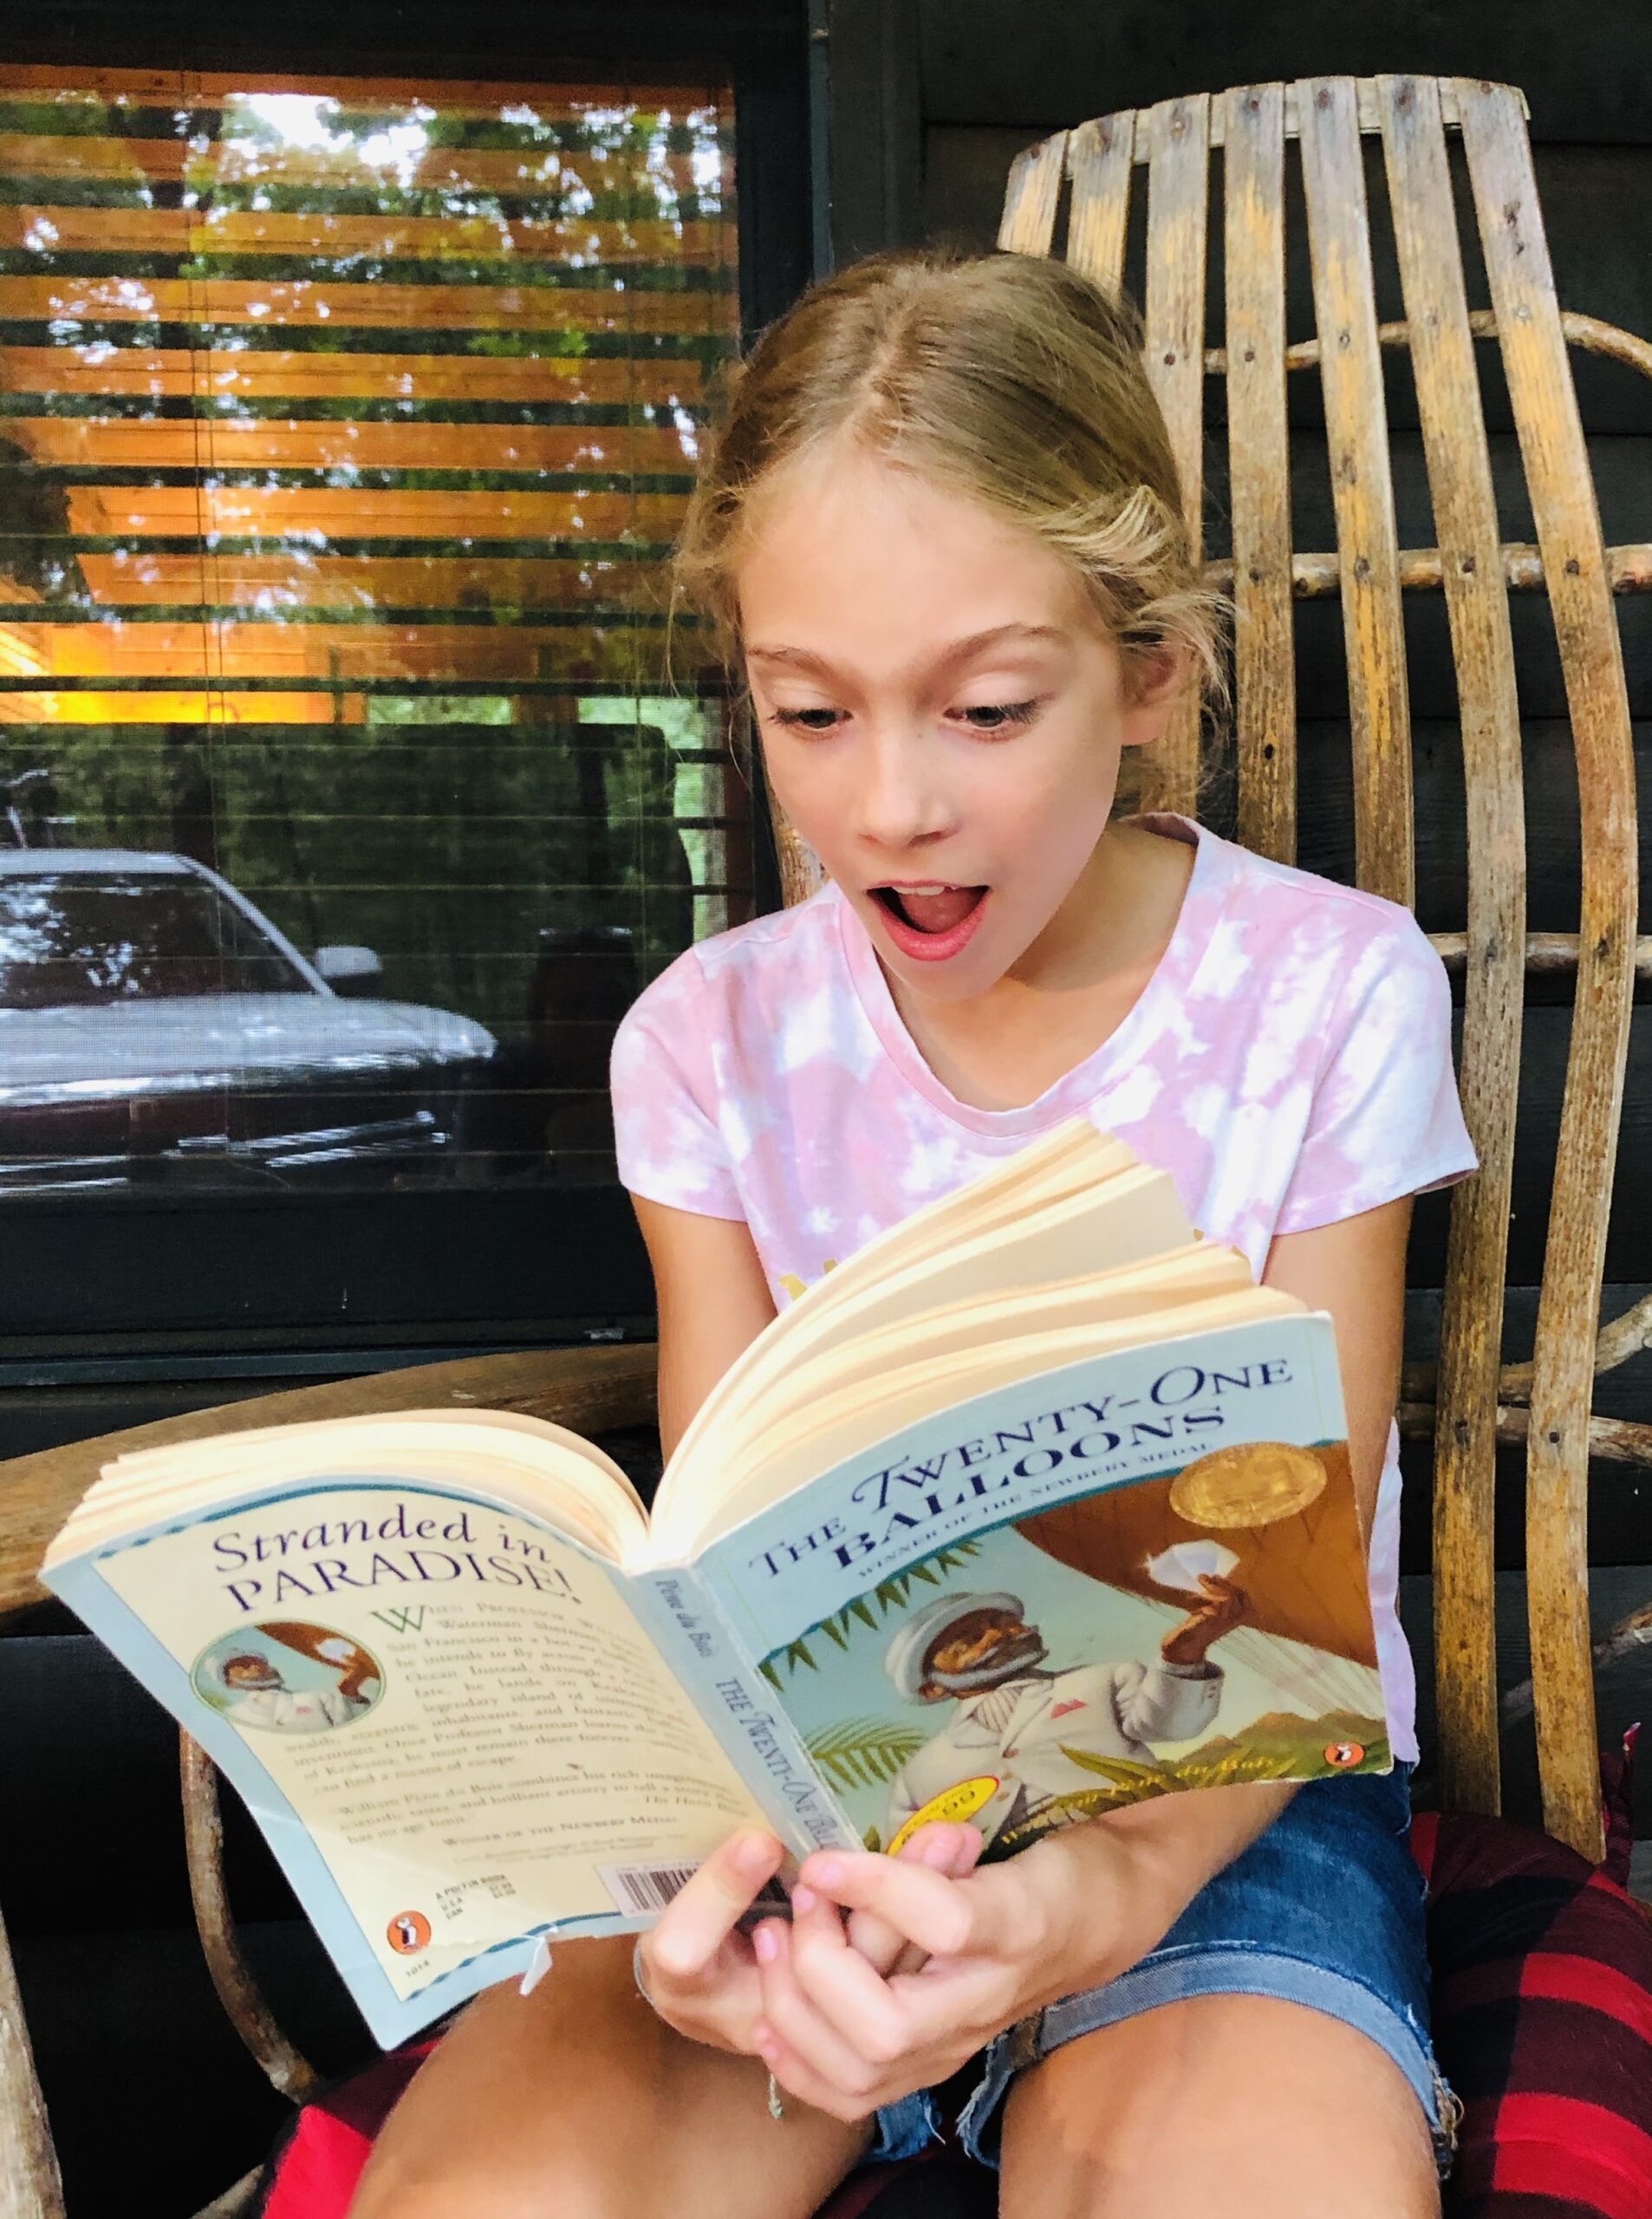 Girl reading with mouth open, like she's surprised, for the Children's Book Review on Twenty-One Balloons.